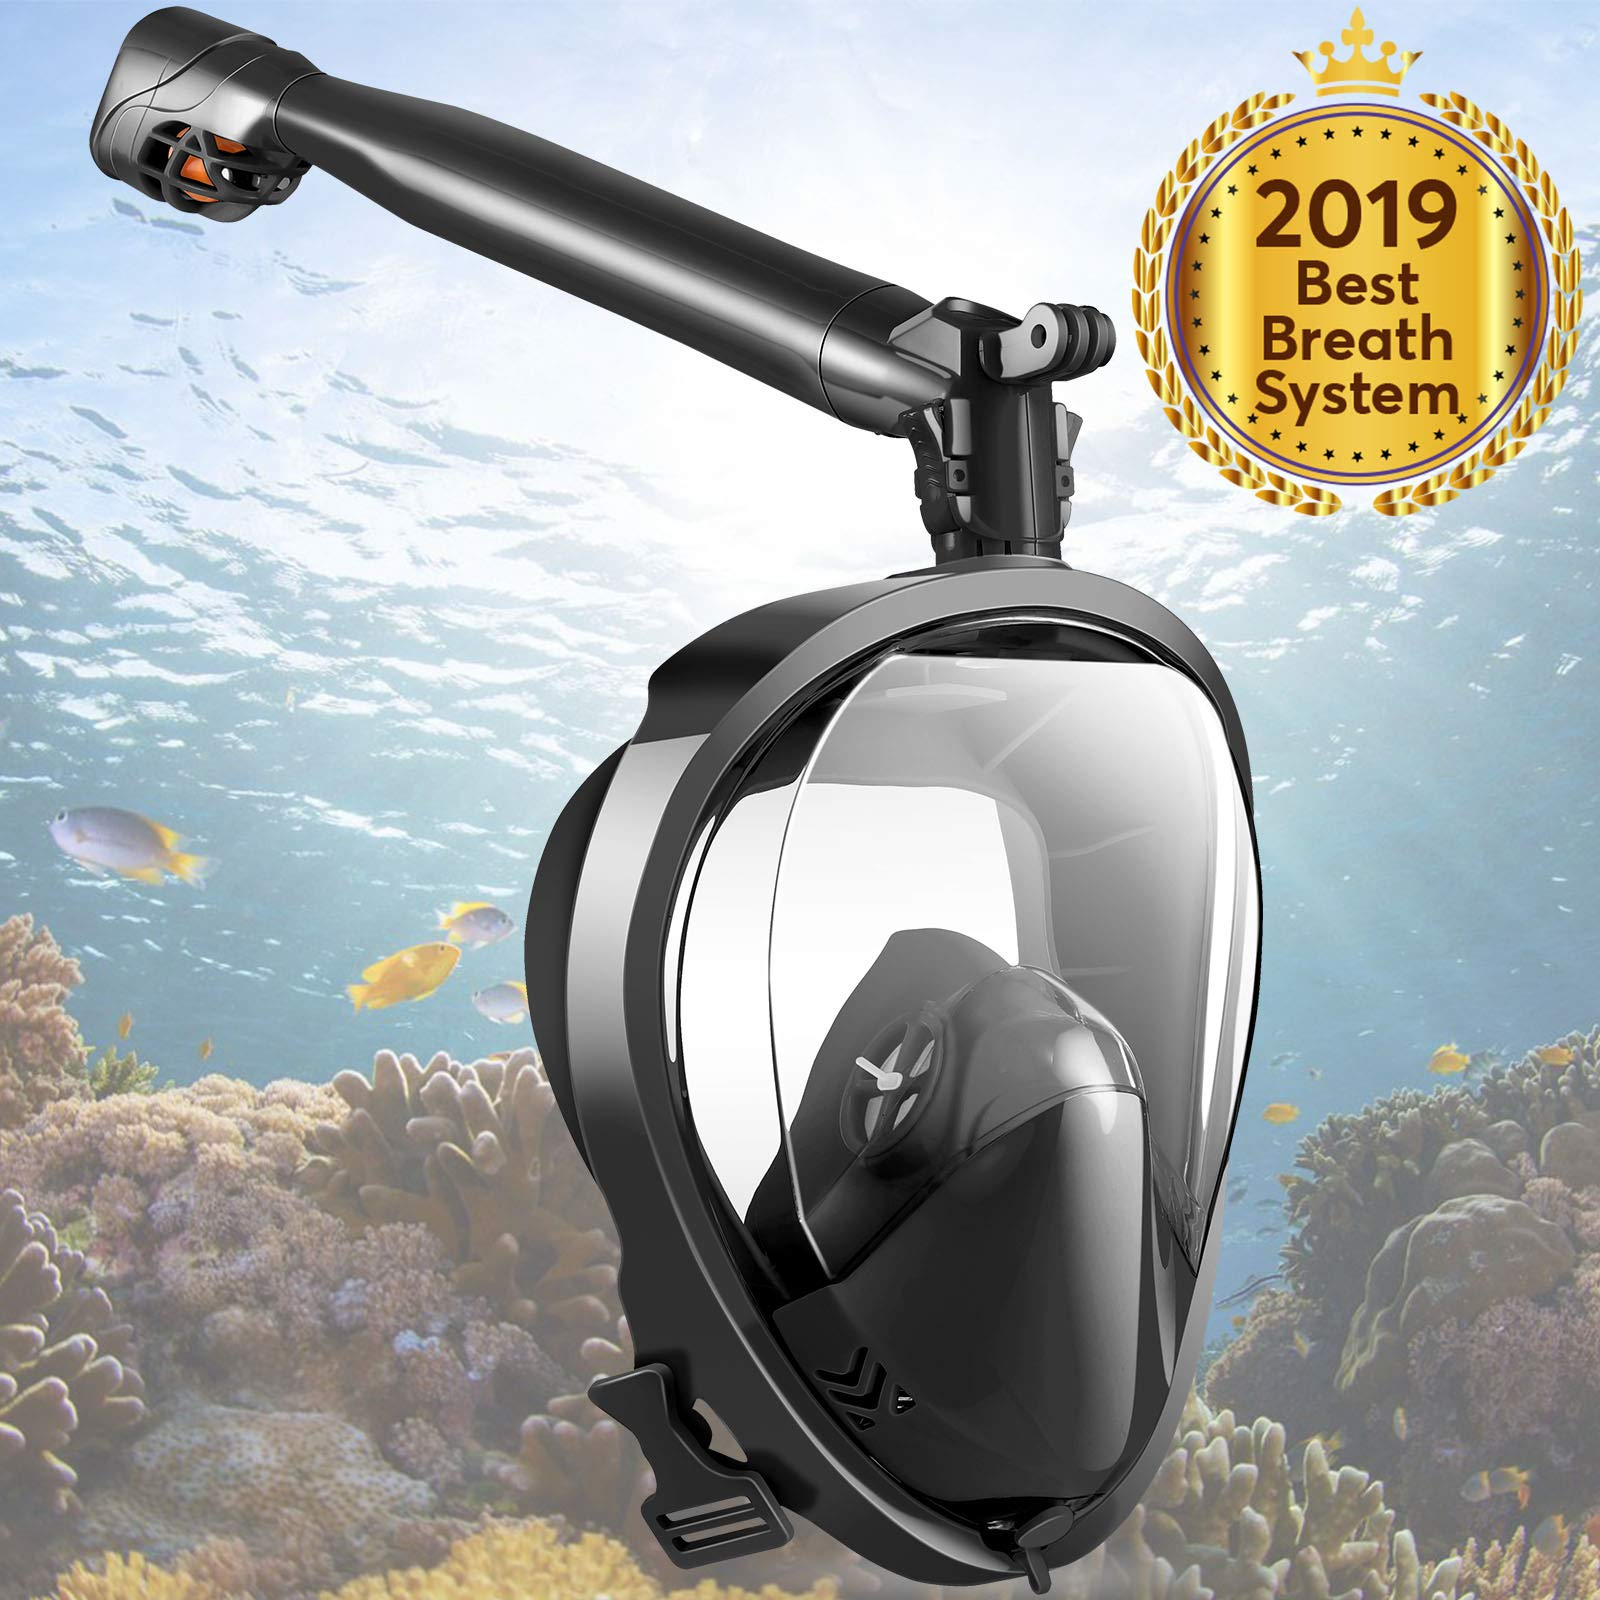 Full Face Snorkel Mask, Joso Snorkeling Mask with Newest Safe Easy Breath System, Longer 360° Rotation Tube Anti-fog 181° Panoramic Seaview Anti-Leak Dry Top Set, for Adults Diving Swimming Backstroke by Joso